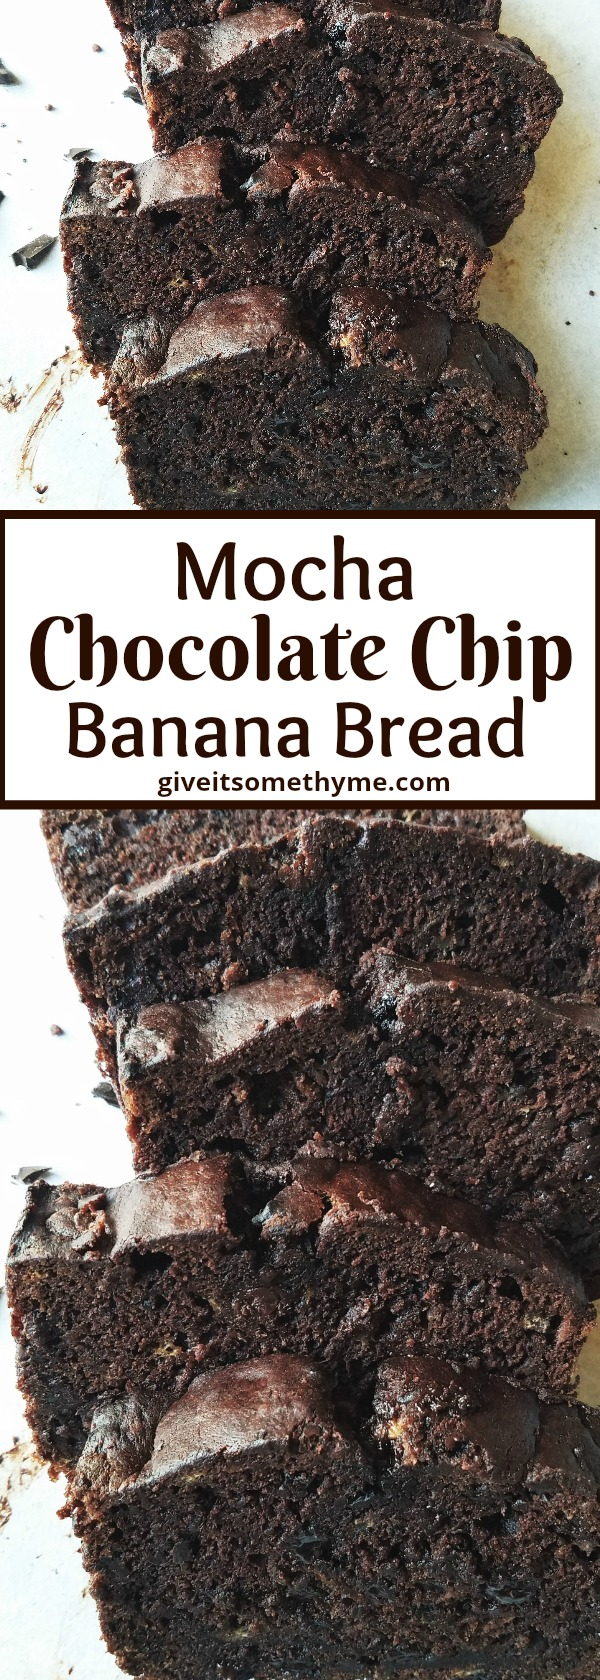 Mocha Chocolate Chip Banana Bread - Give it Some Thyme